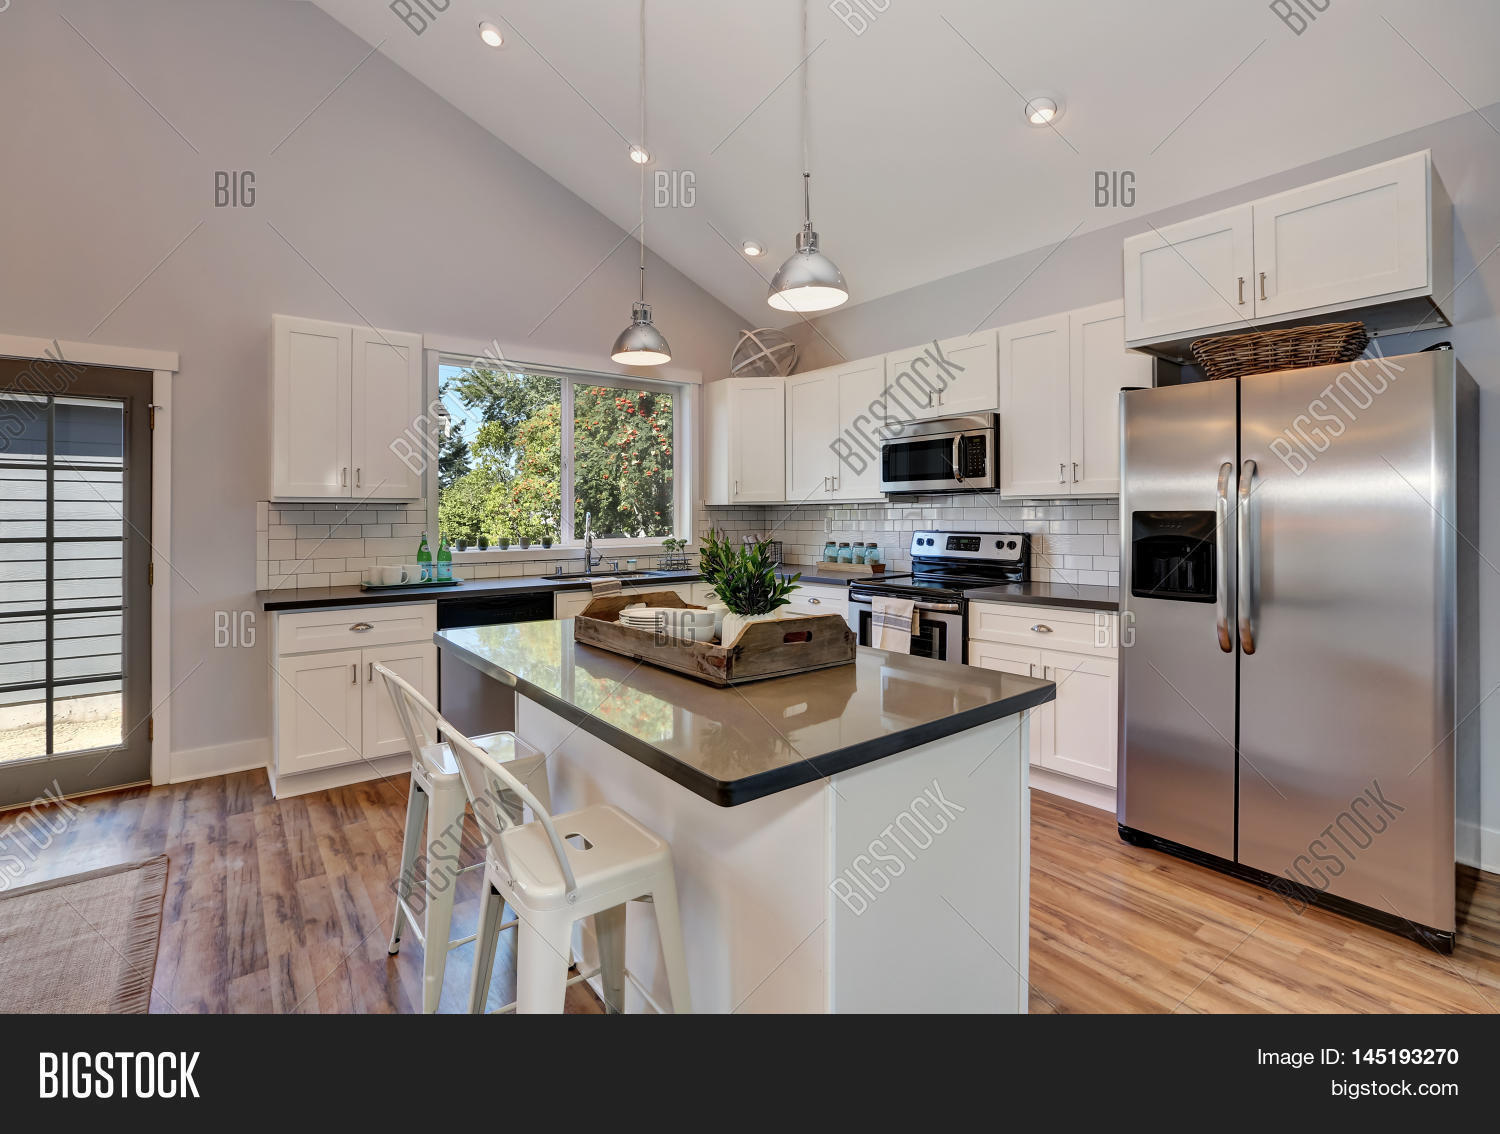 Interior Kitchen Room Image Photo Free Trial Bigstock